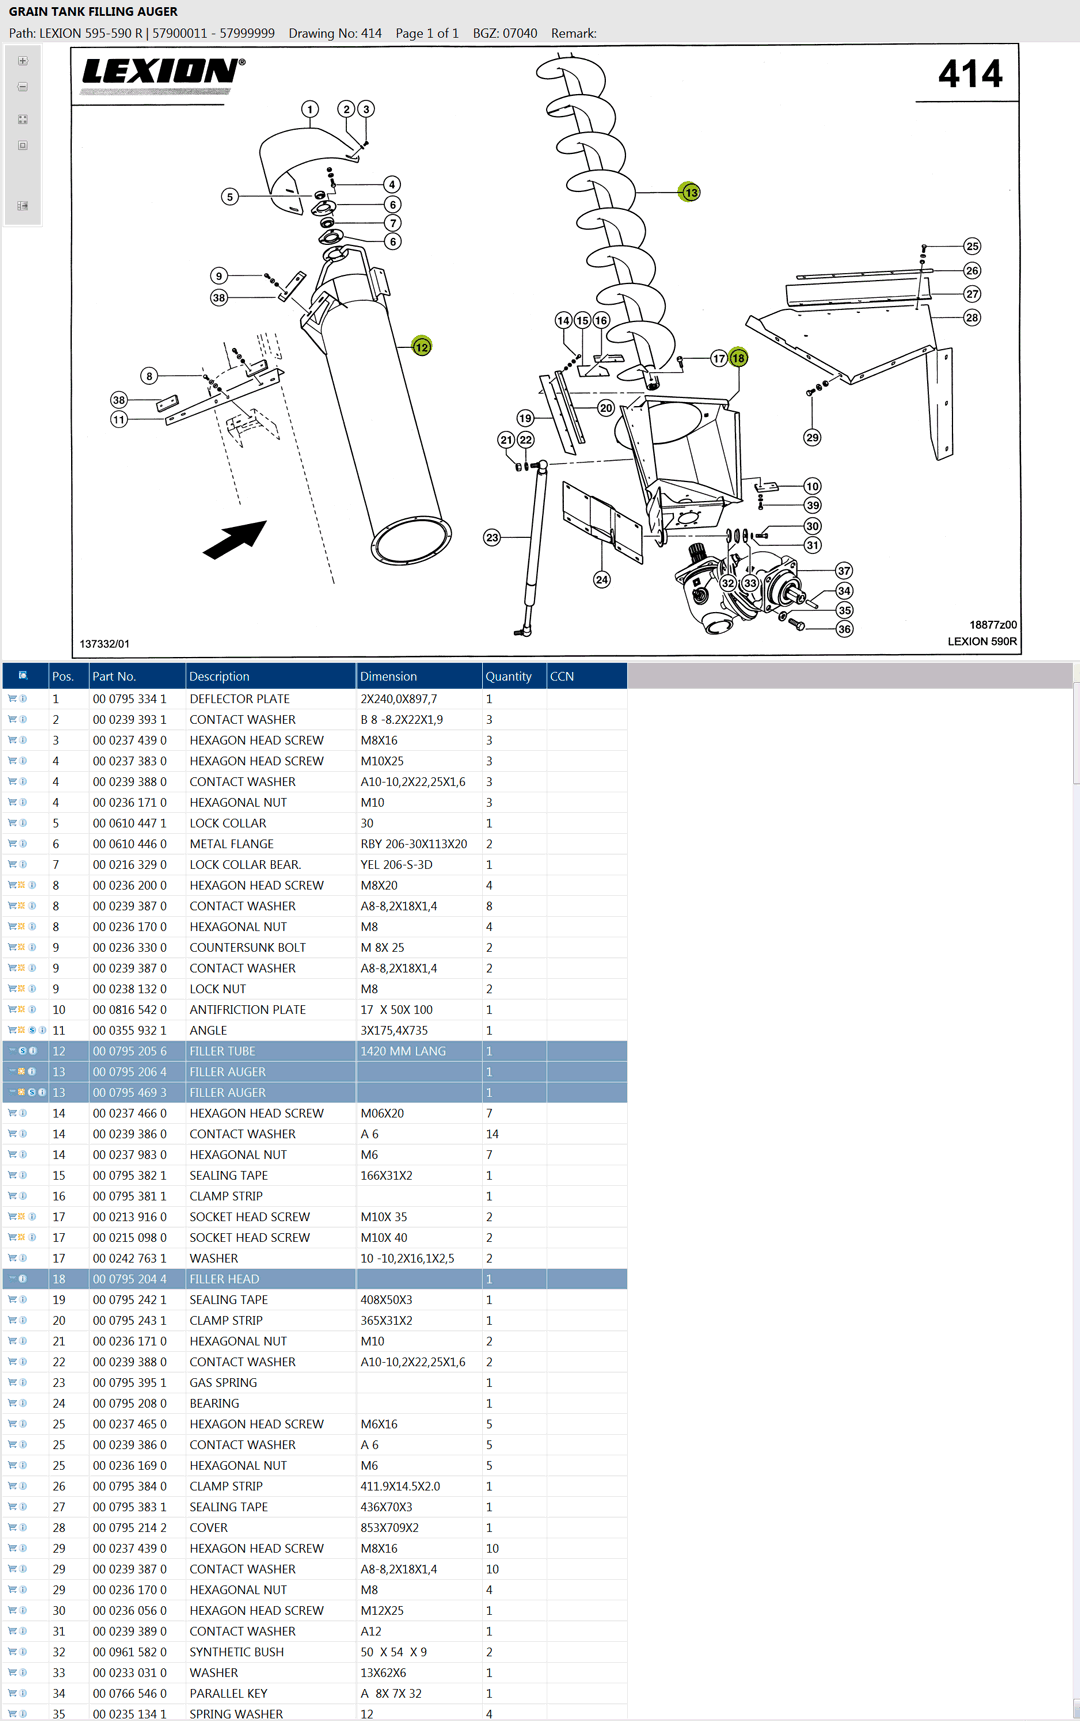 Lexion 595R parts and schemes - Grain tank filling auger and filling head